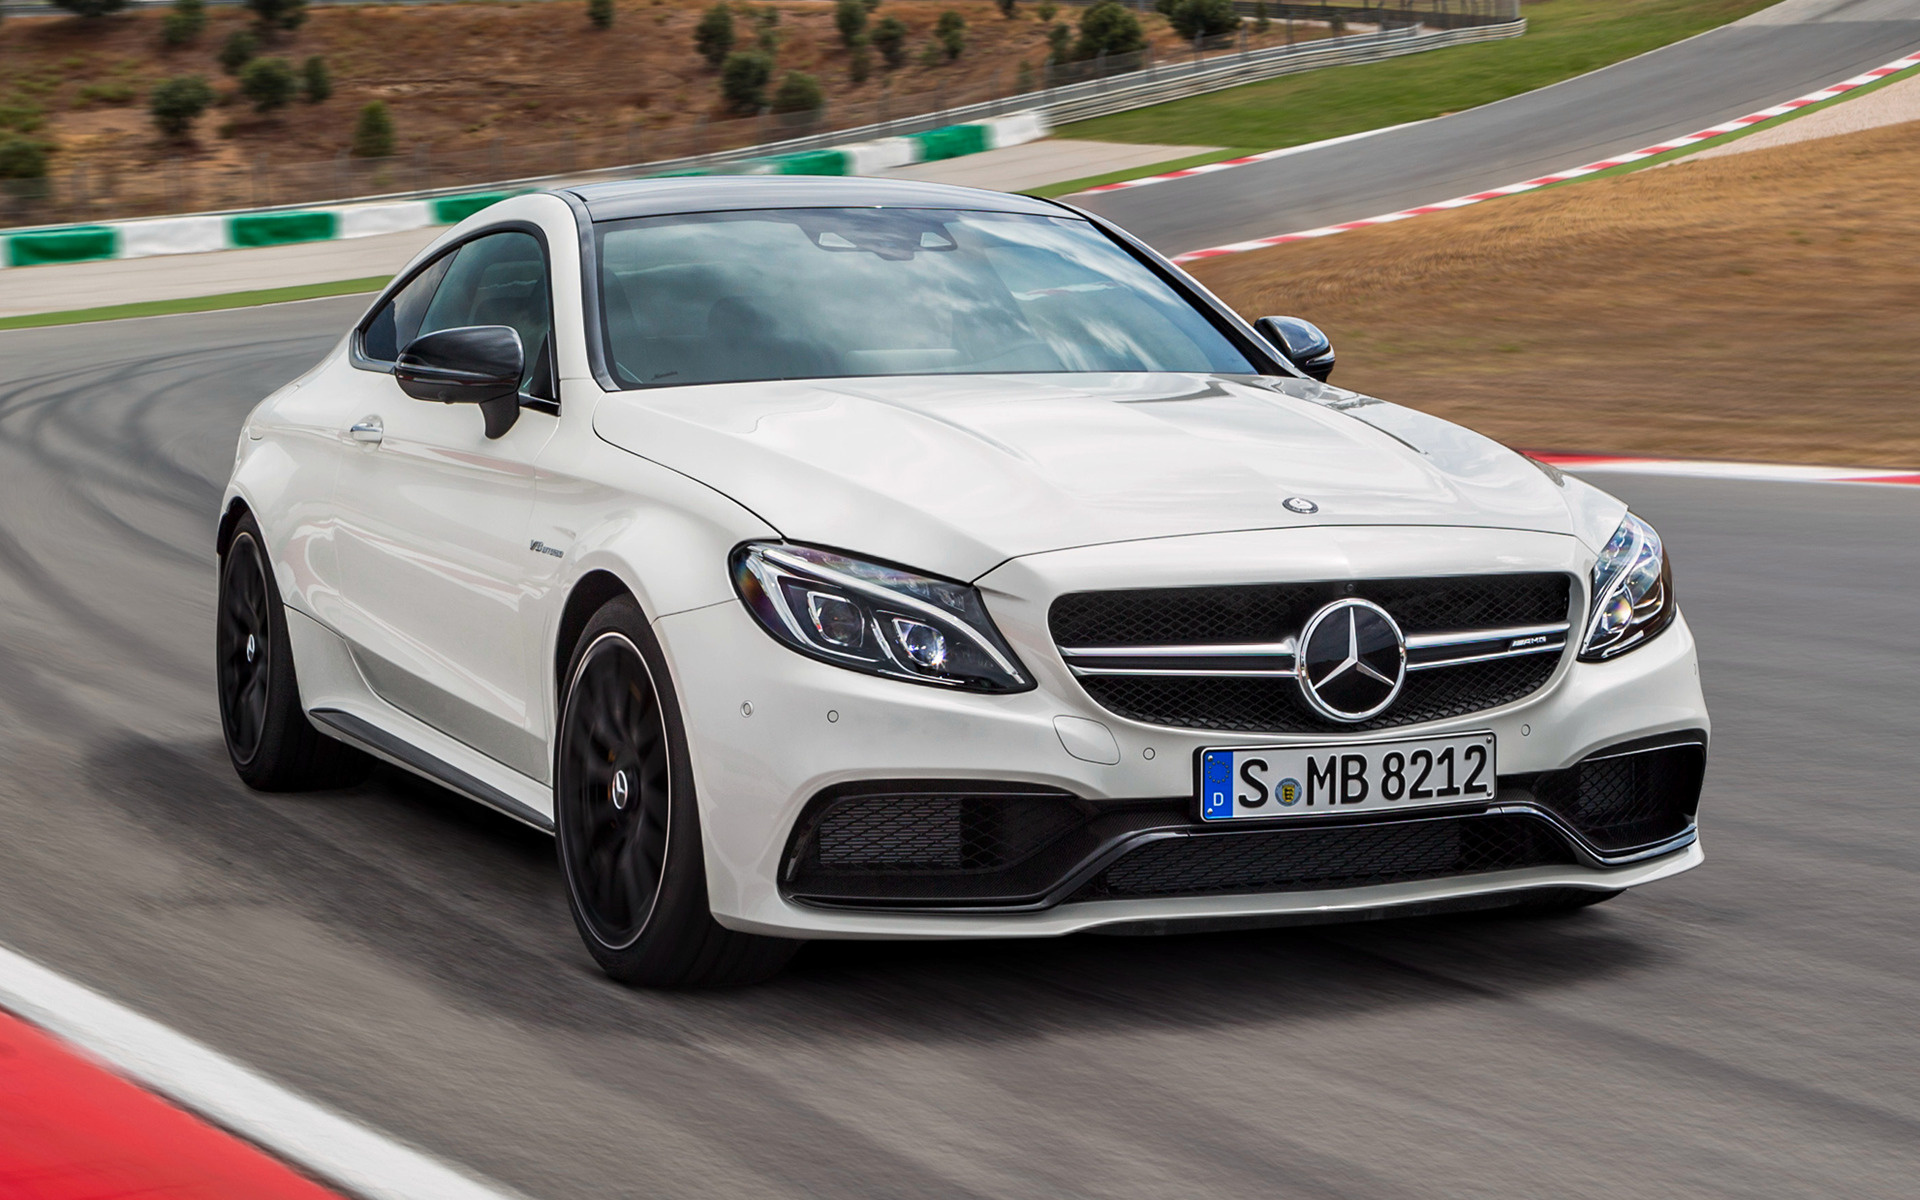 2016 Mercedes Amg C 63 S Coupe Wallpapers And Hd Images